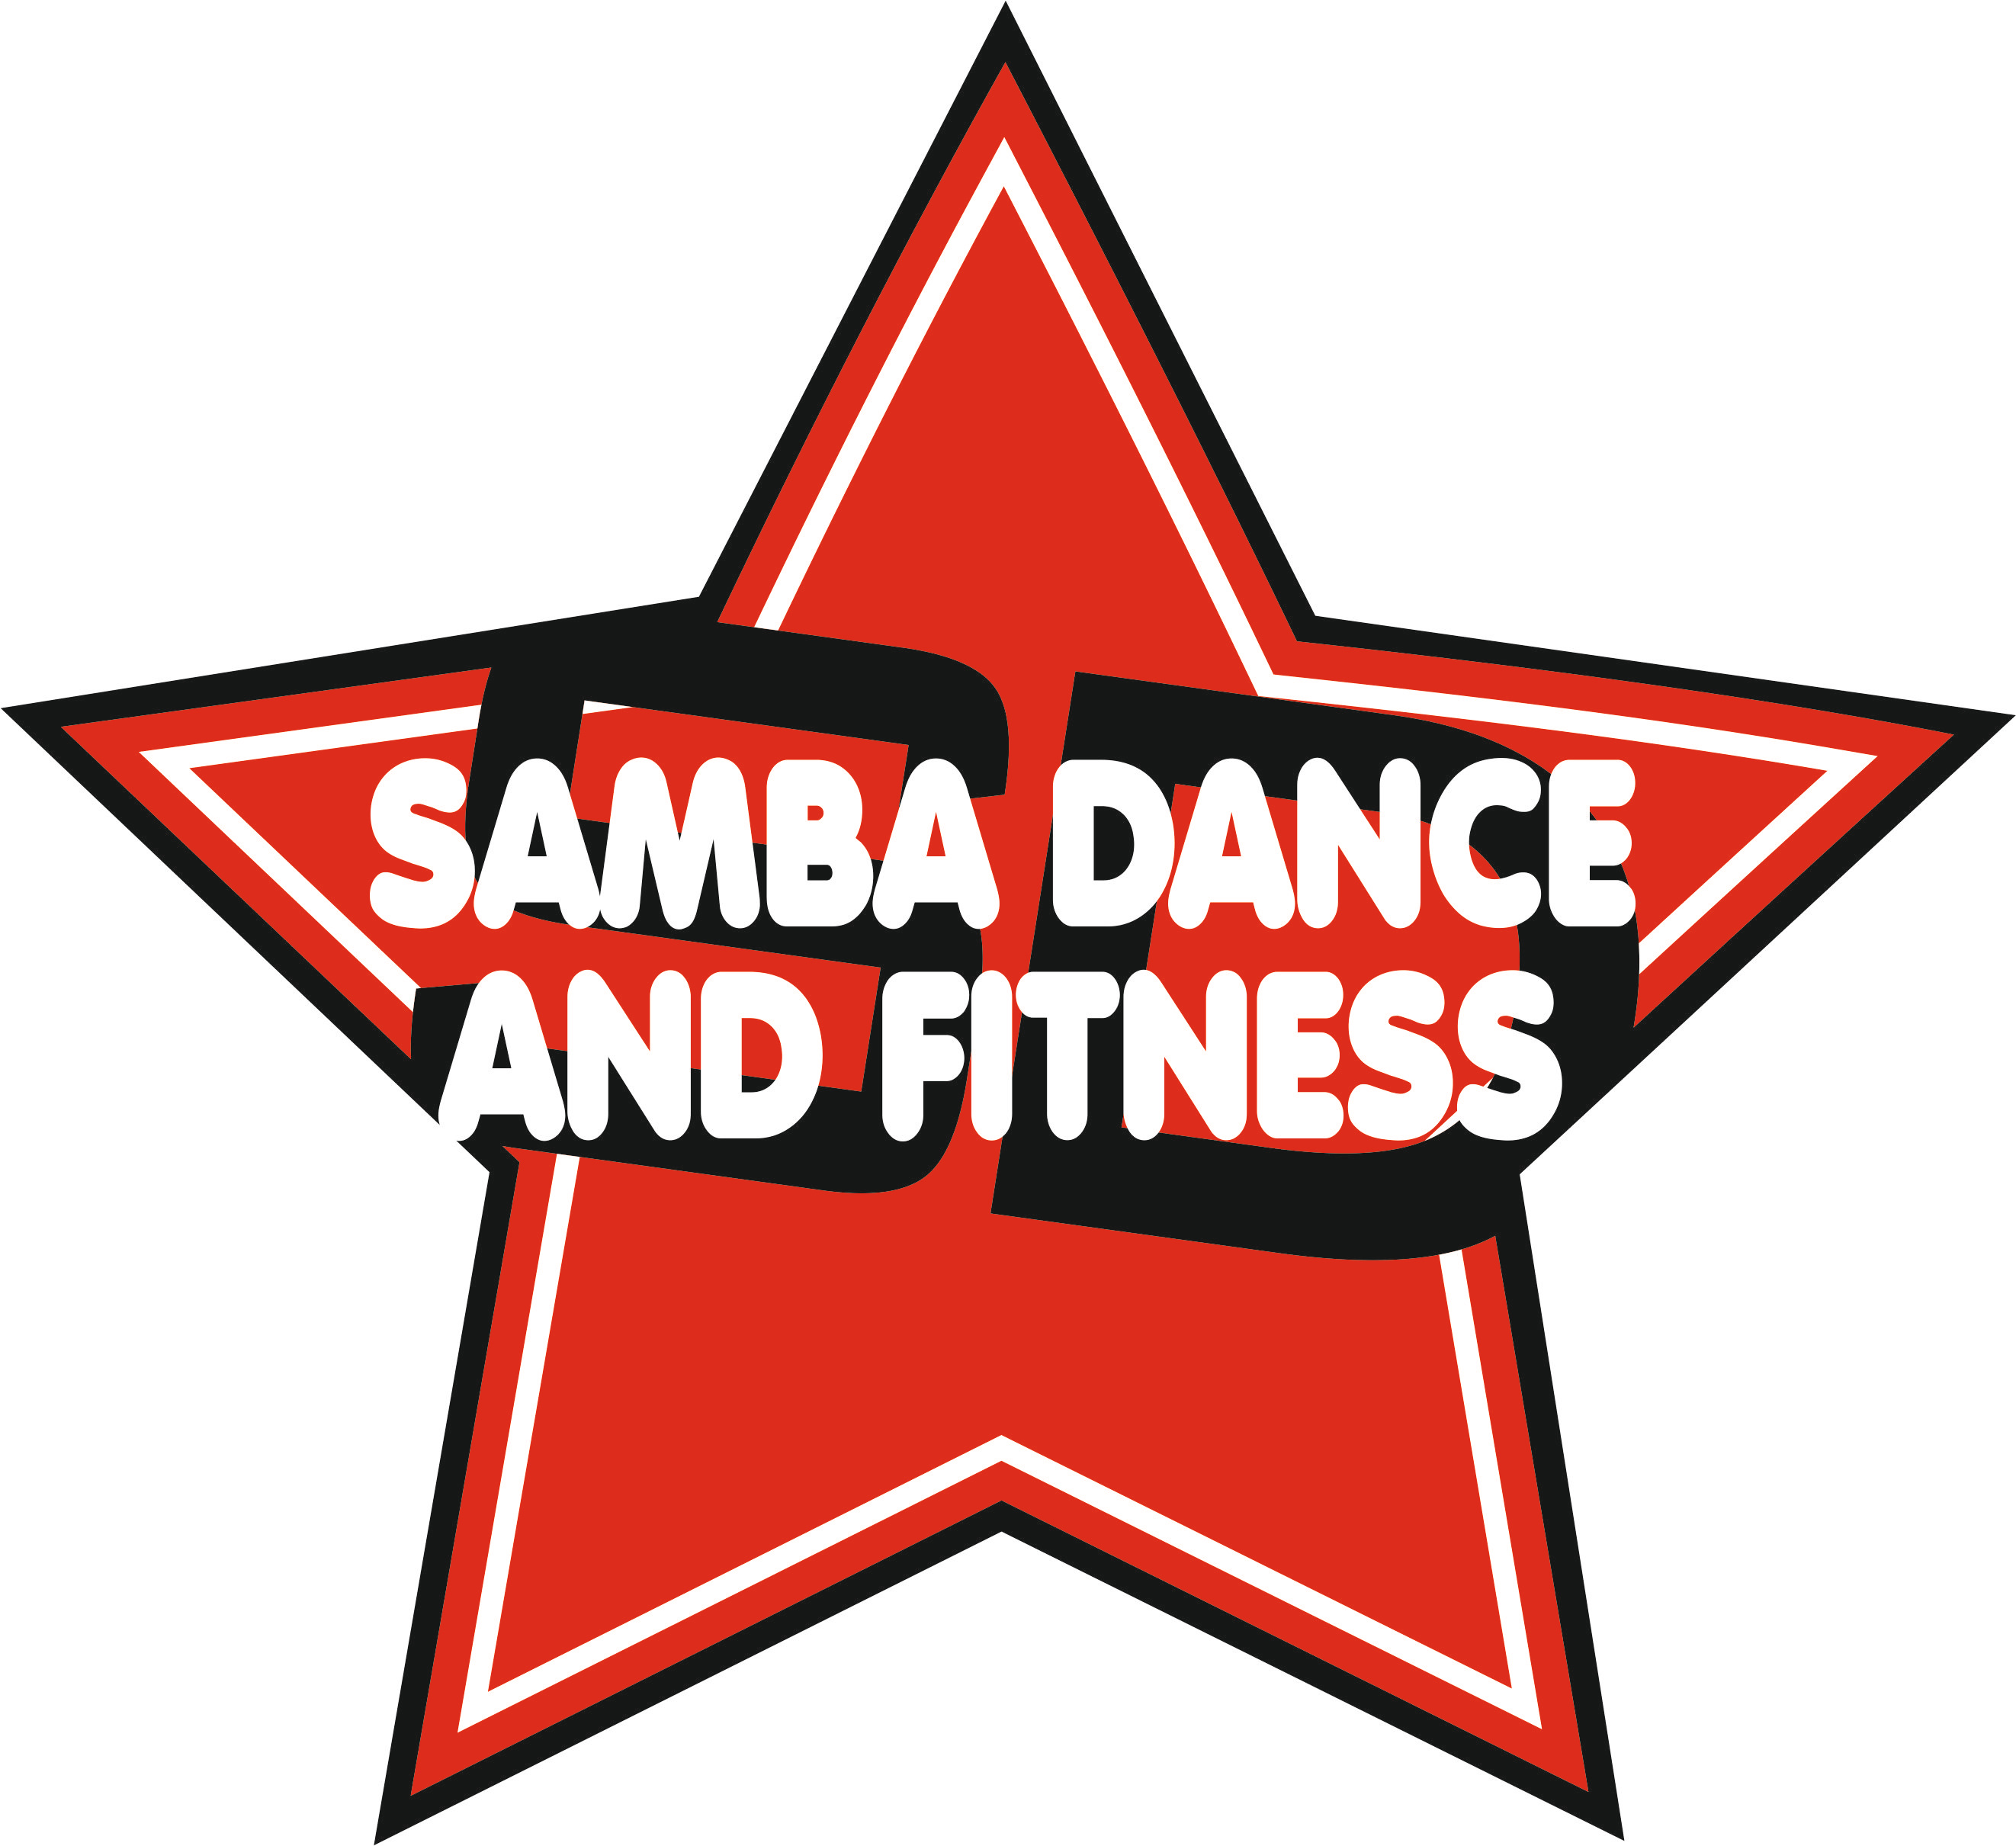 samba dance and fitness sponsor